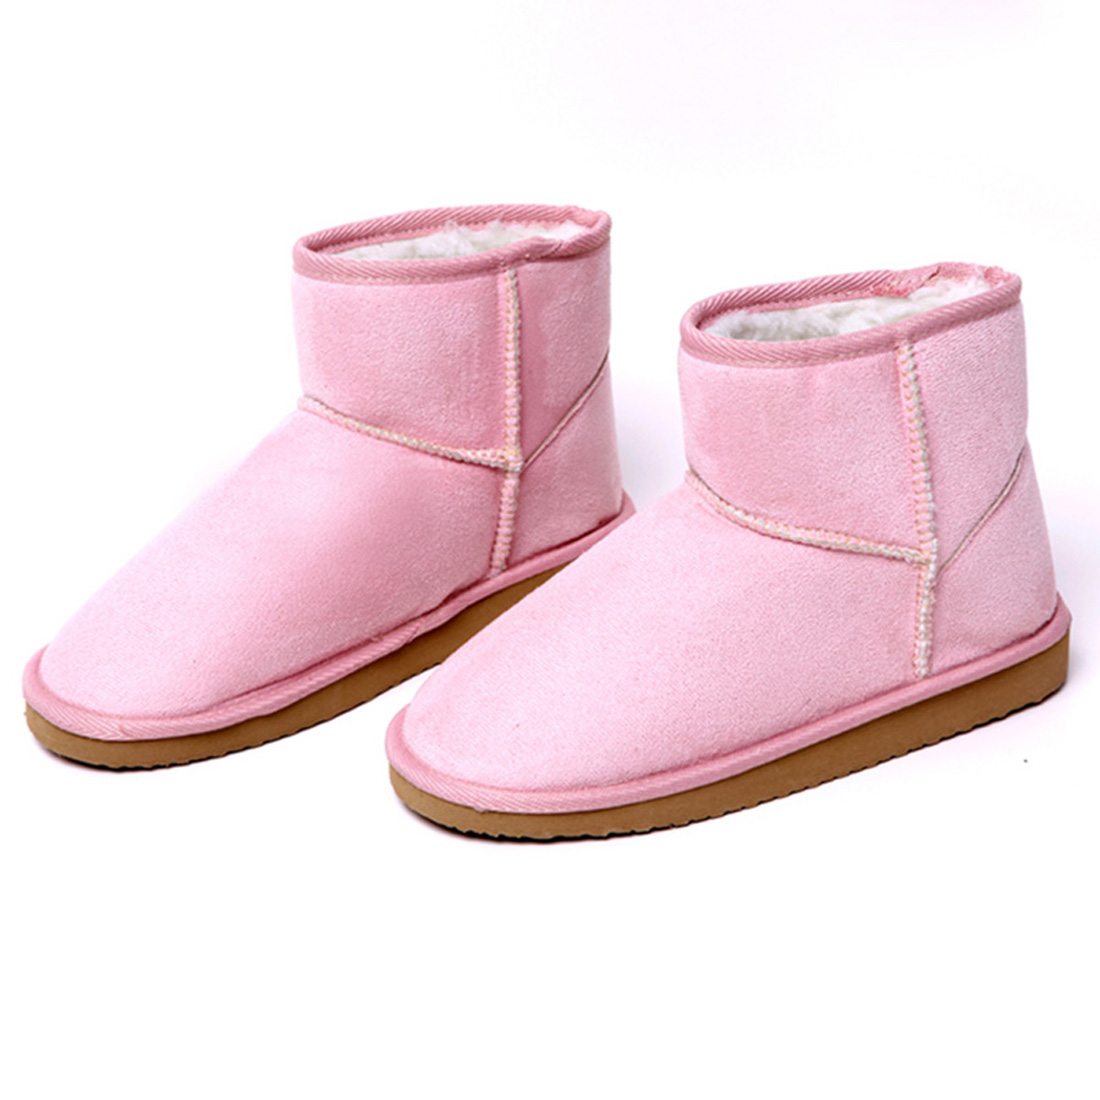 7 colors Women Boots Calf Knee-high Faux Flat Platform Shoes Warm Winter Snow Boots Suede Winter Hot Ankle Boots